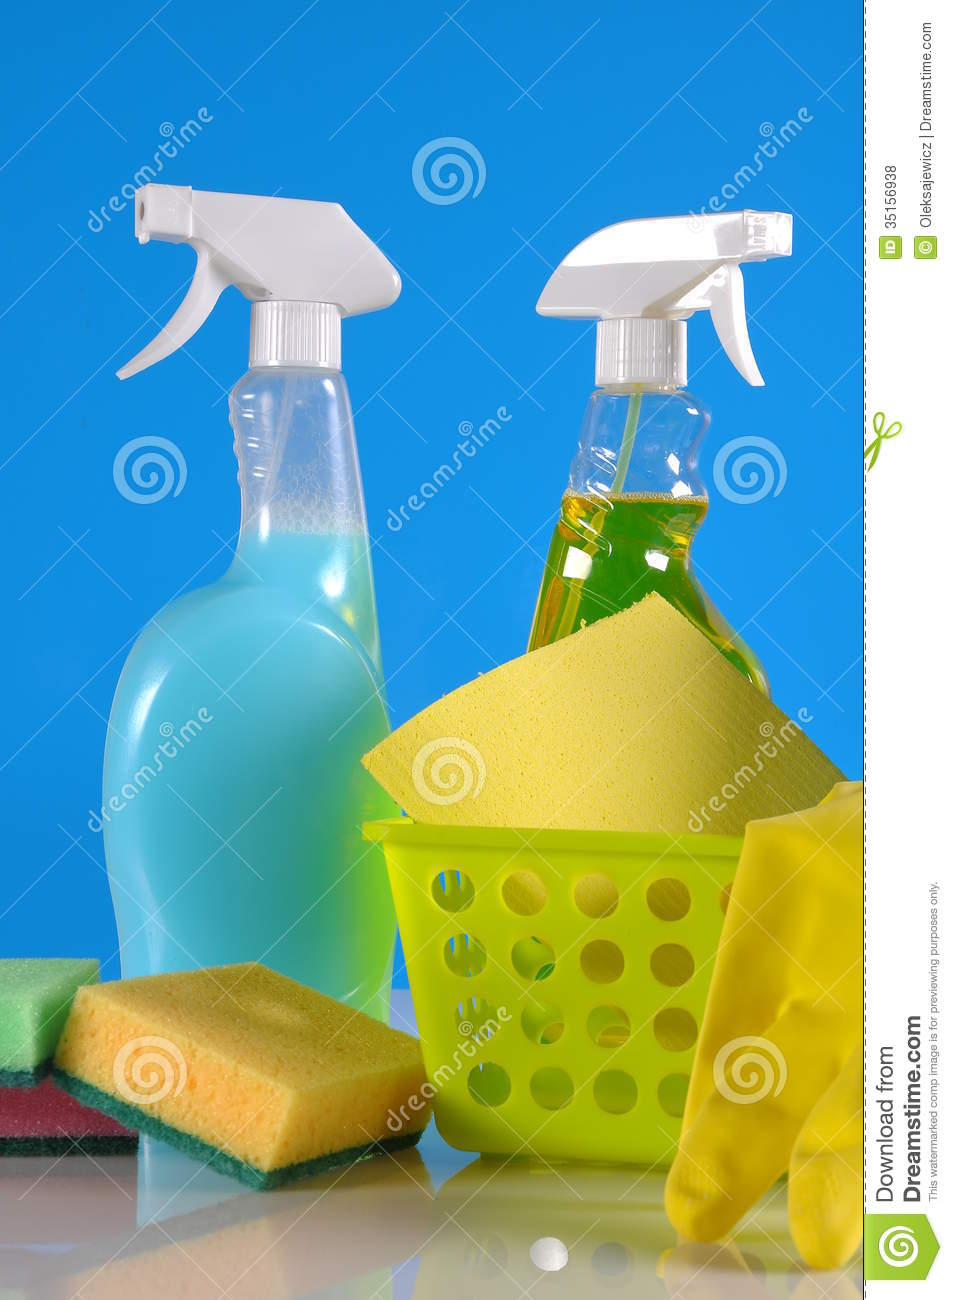 House cleaning theme royalty free stock photos image for House cleaning stock photos